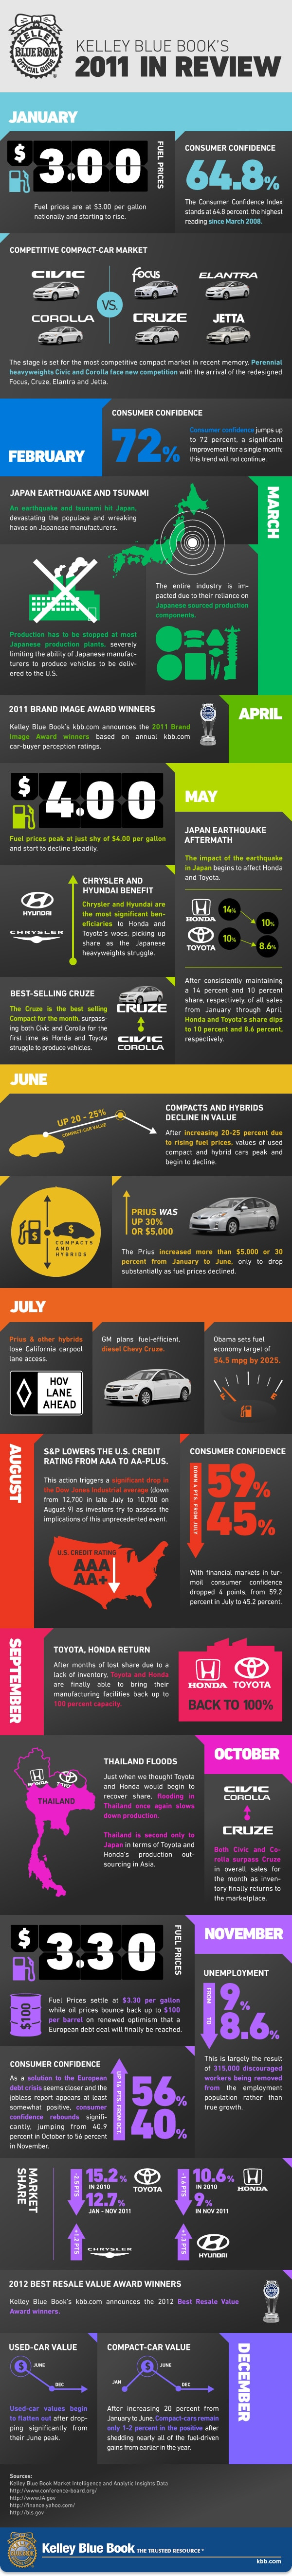 A look back at the auto industry in 2011